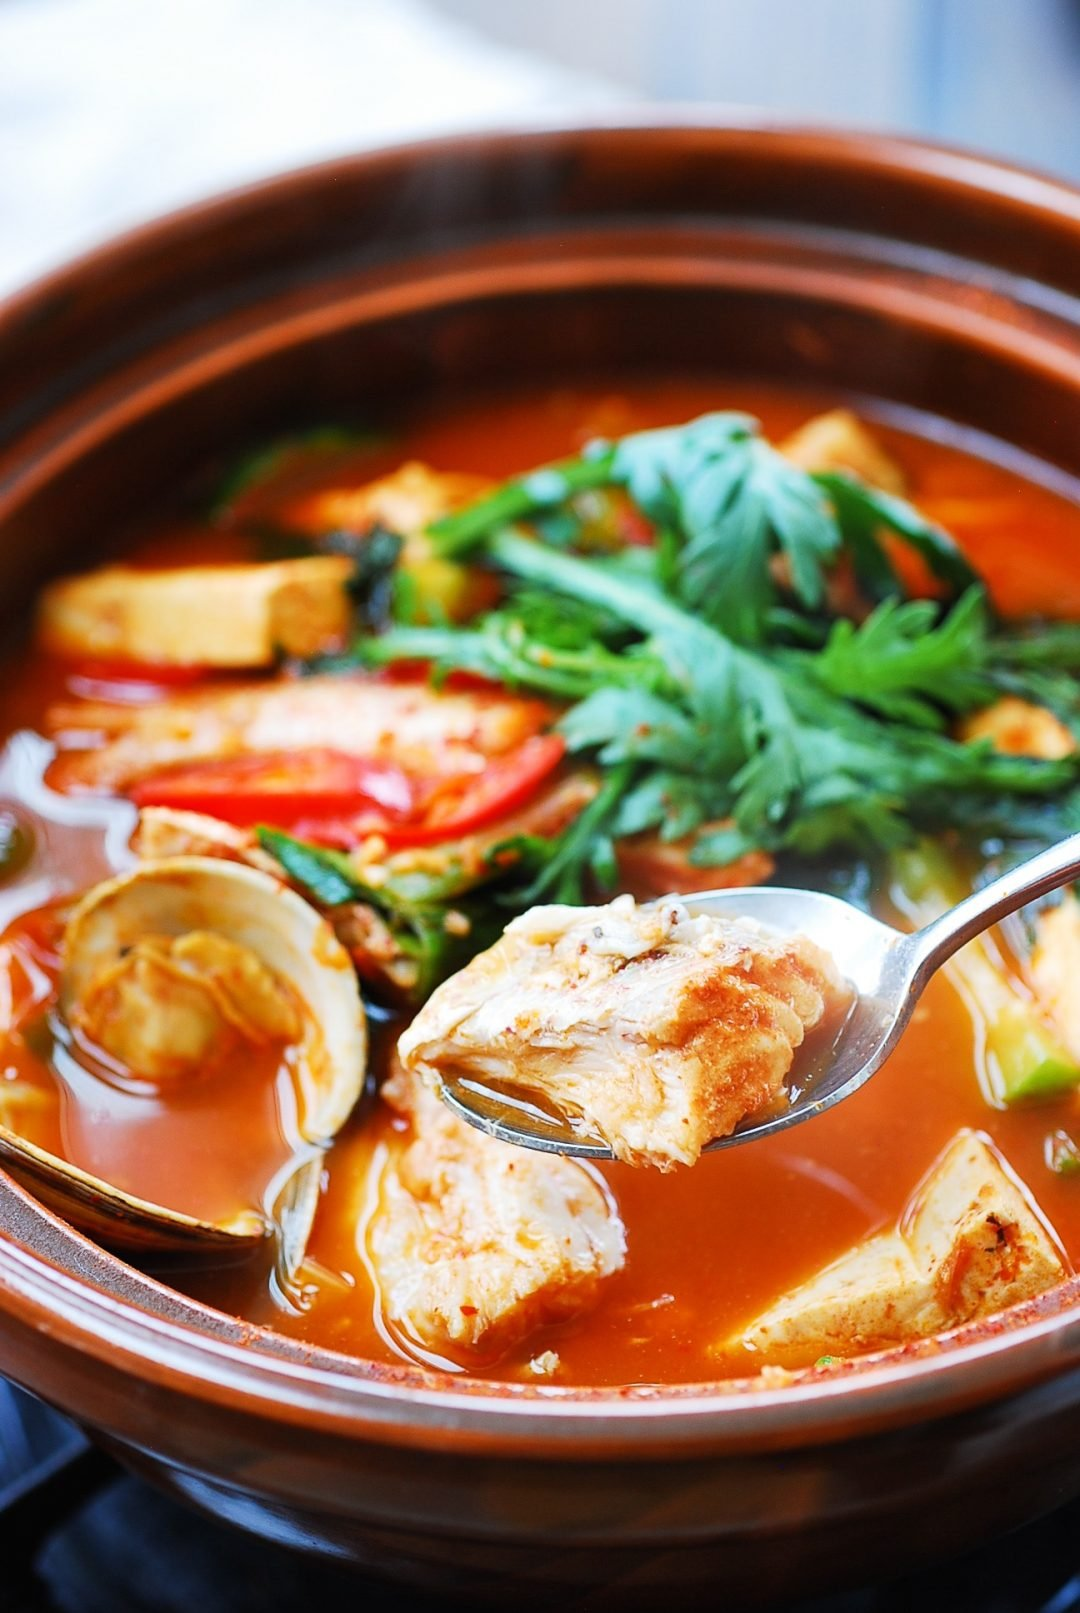 DSC 2725 2 e1613456389474 - Domi Maeuntang (Spicy Fish Stew with Red Snapper)